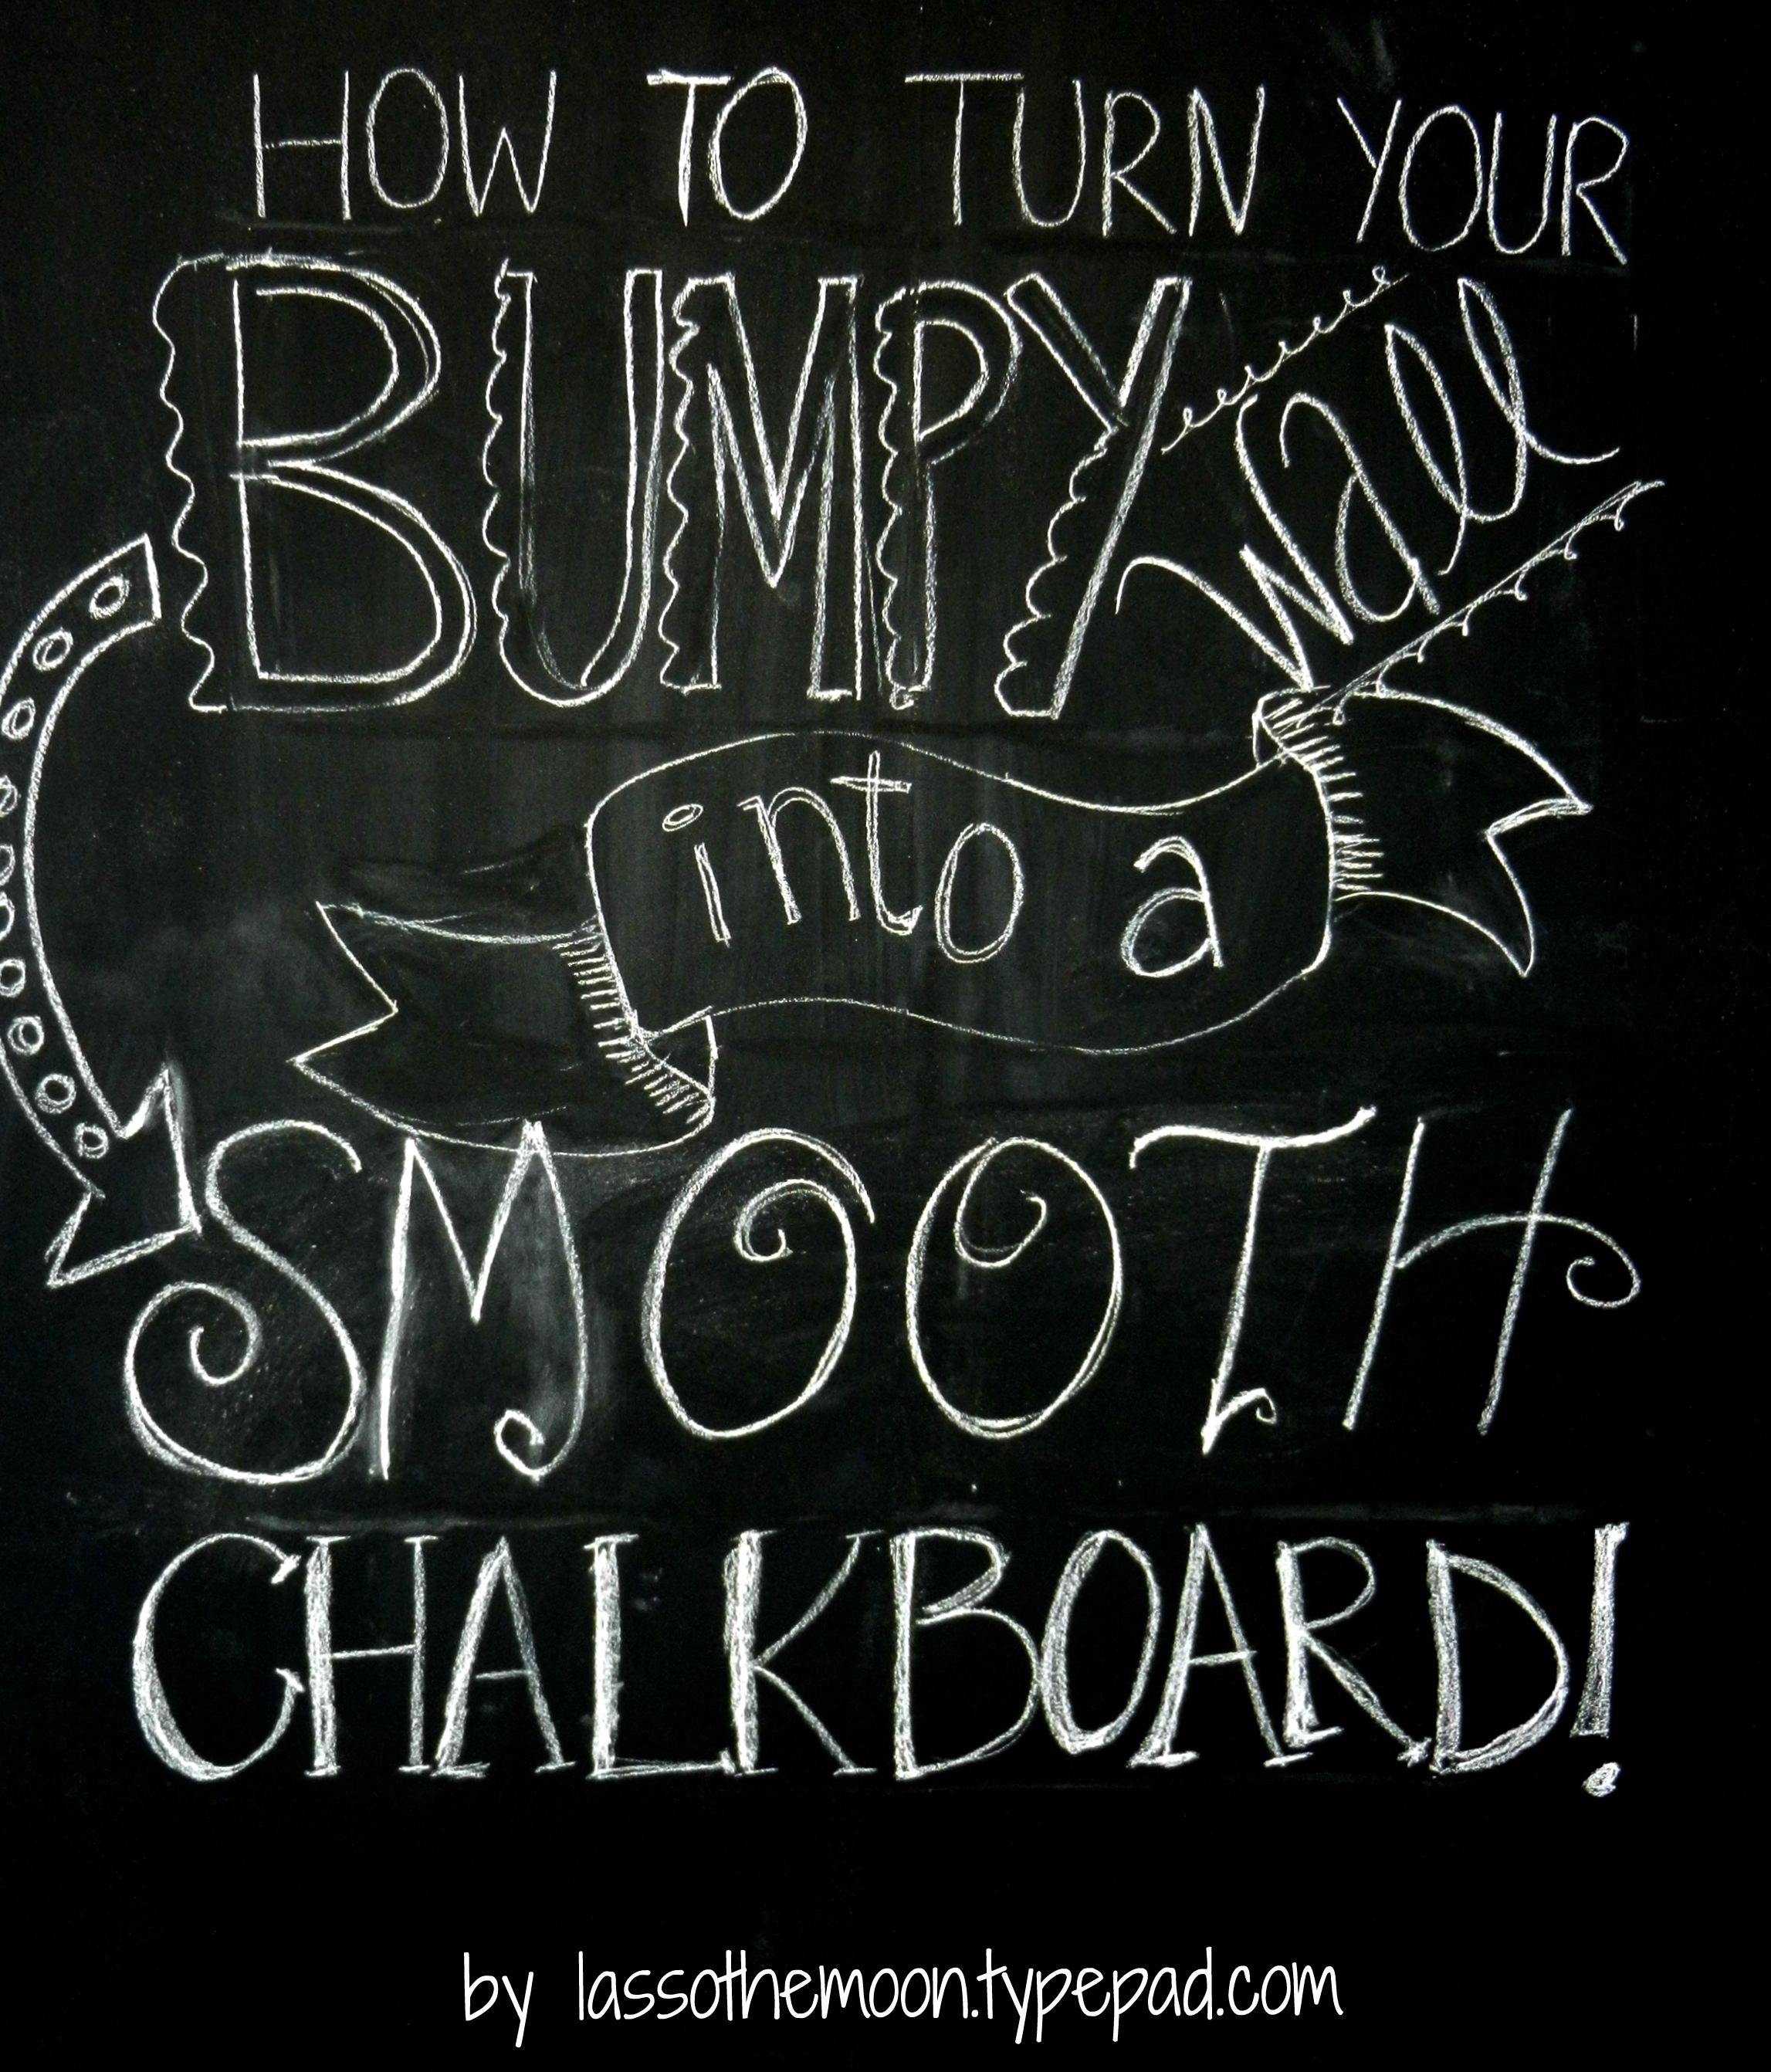 Chalkboard Wall How To Le